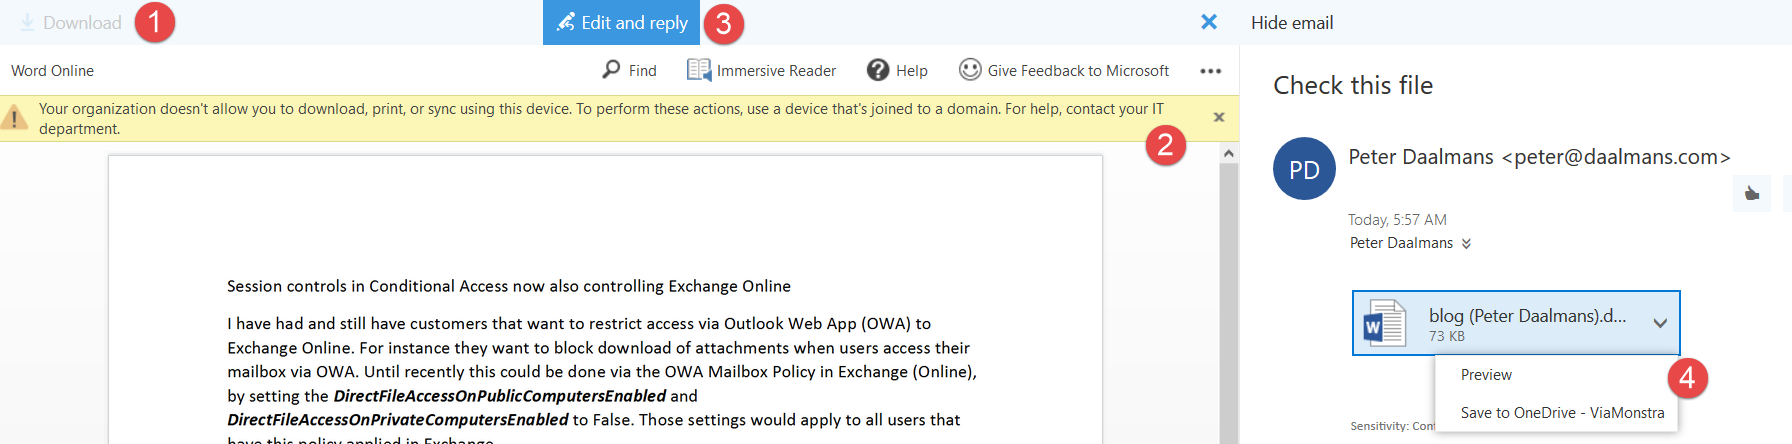 Session controls in Conditional Access now also controlling Exchange